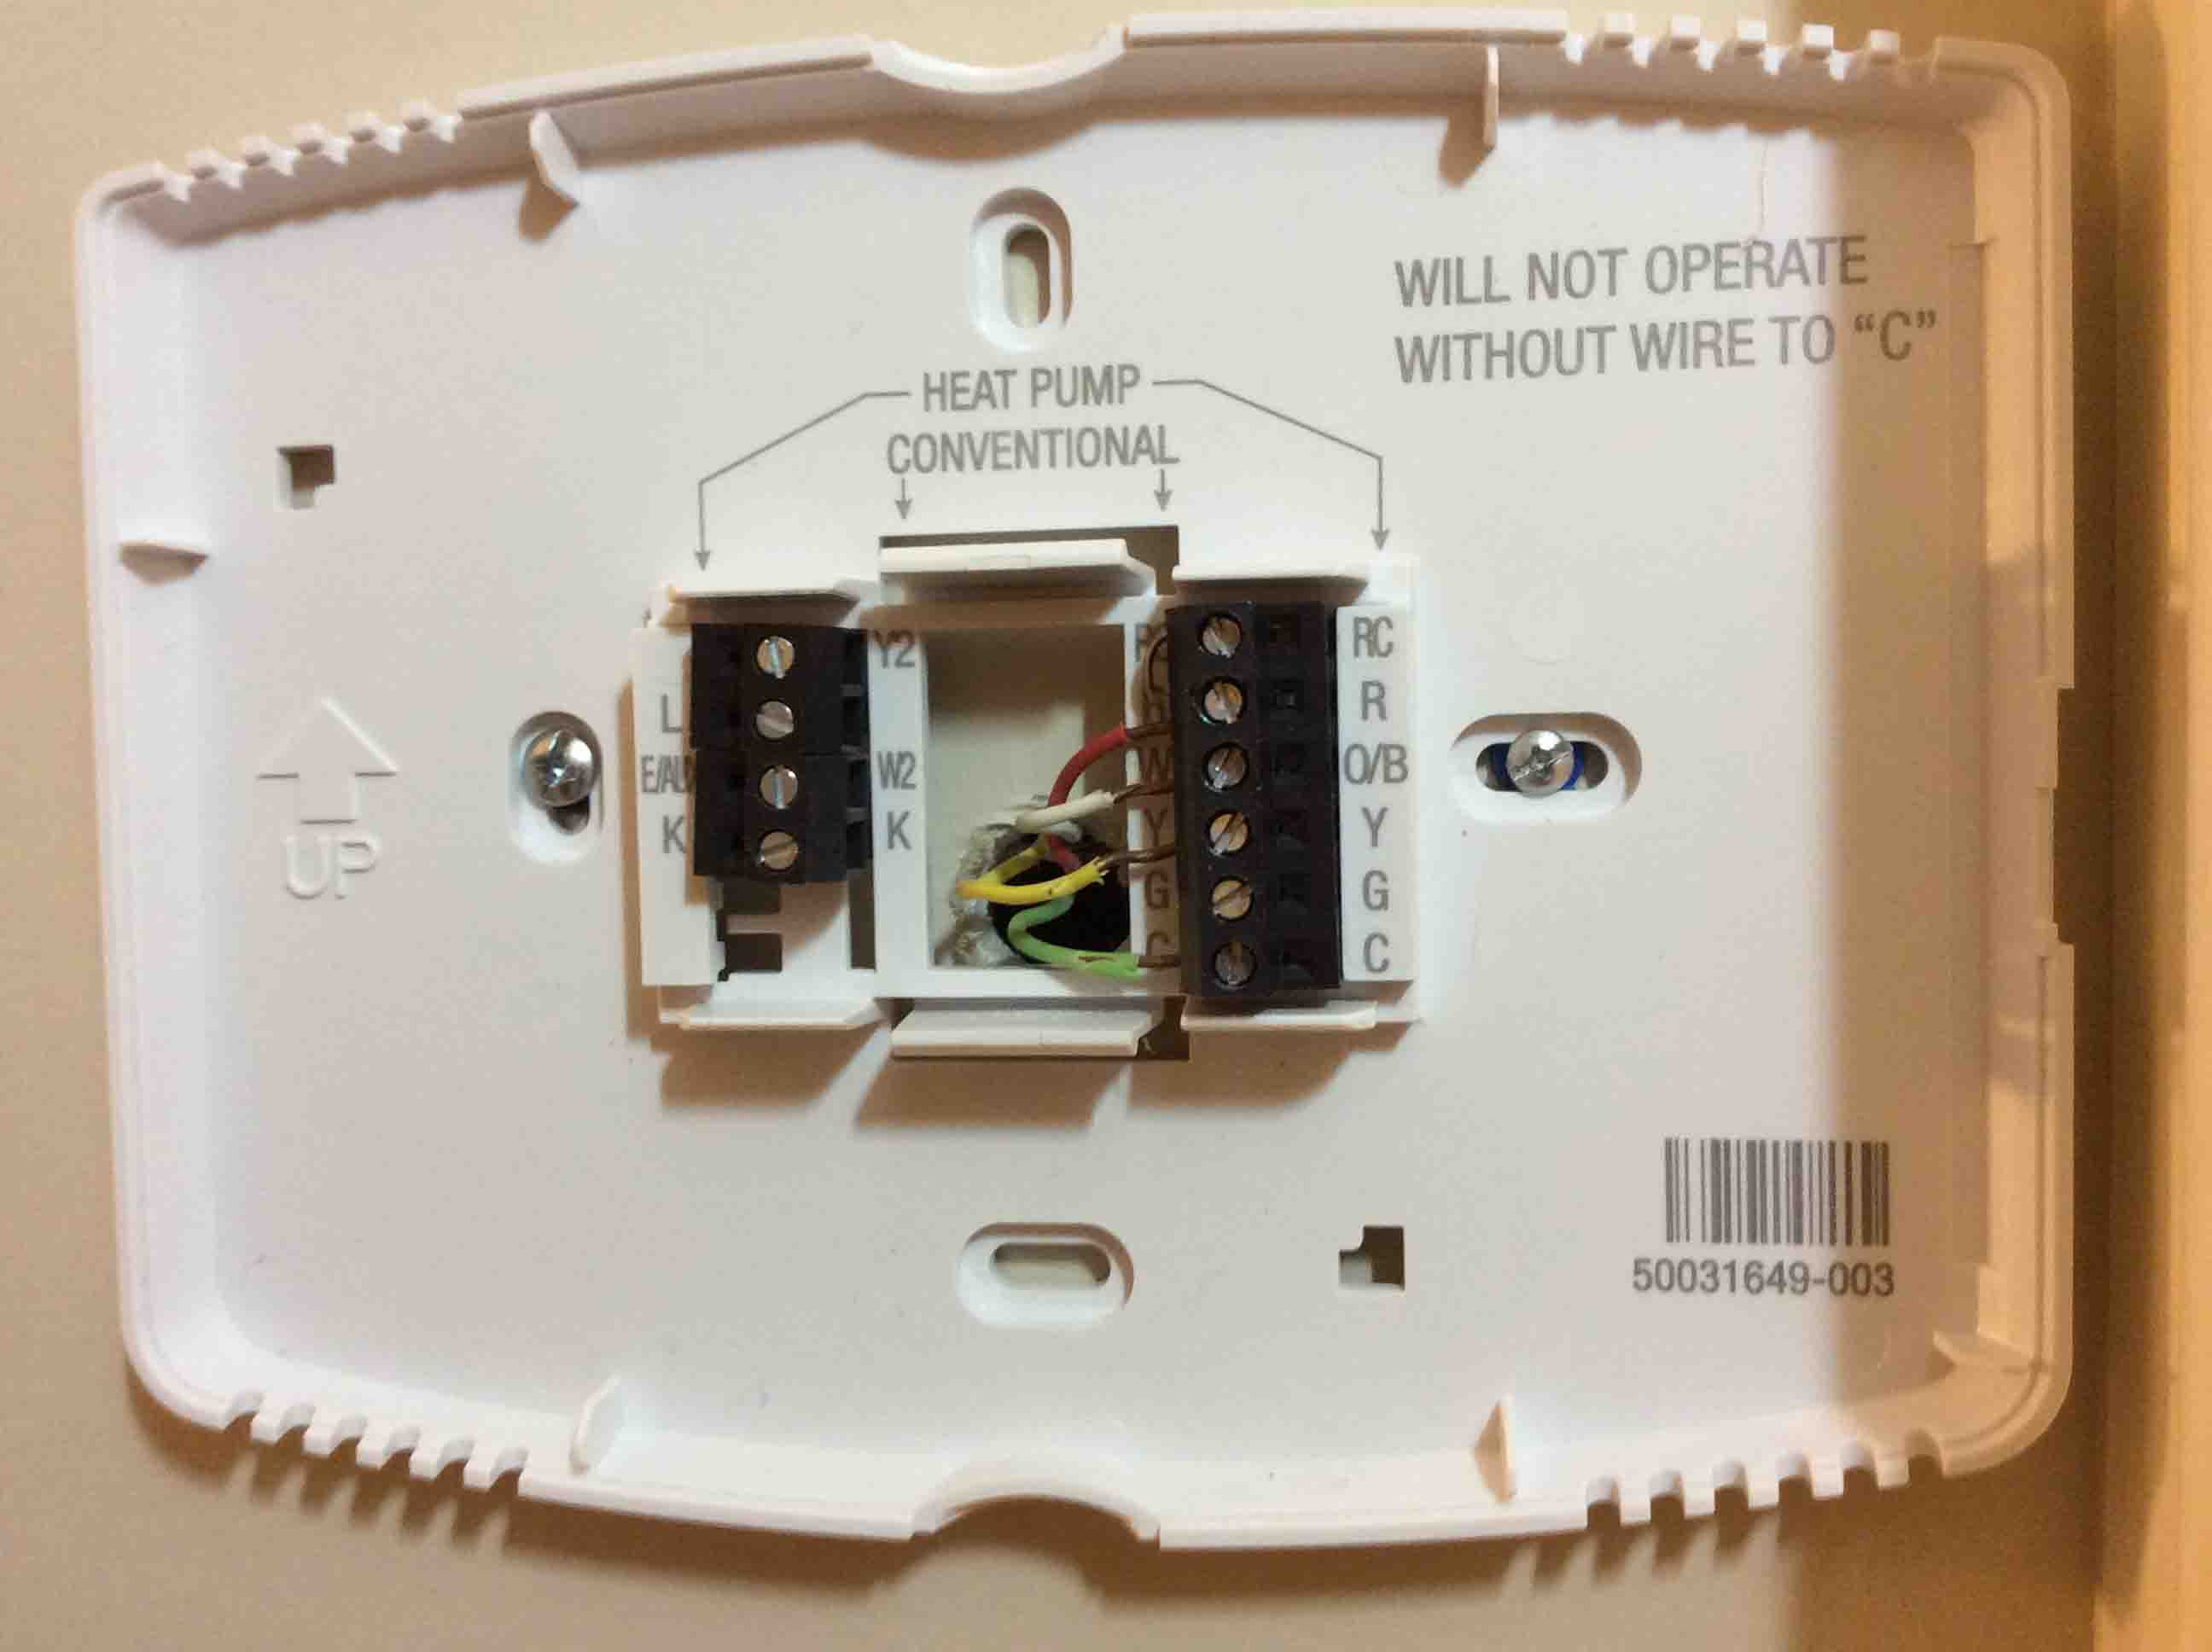 HoneywellWiFiThermostatWallPlateTypicalWiring_001 honeywell smart thermostat wiring instructions rth9580wf tom's honeywell thermostat wiring schematic at nearapp.co